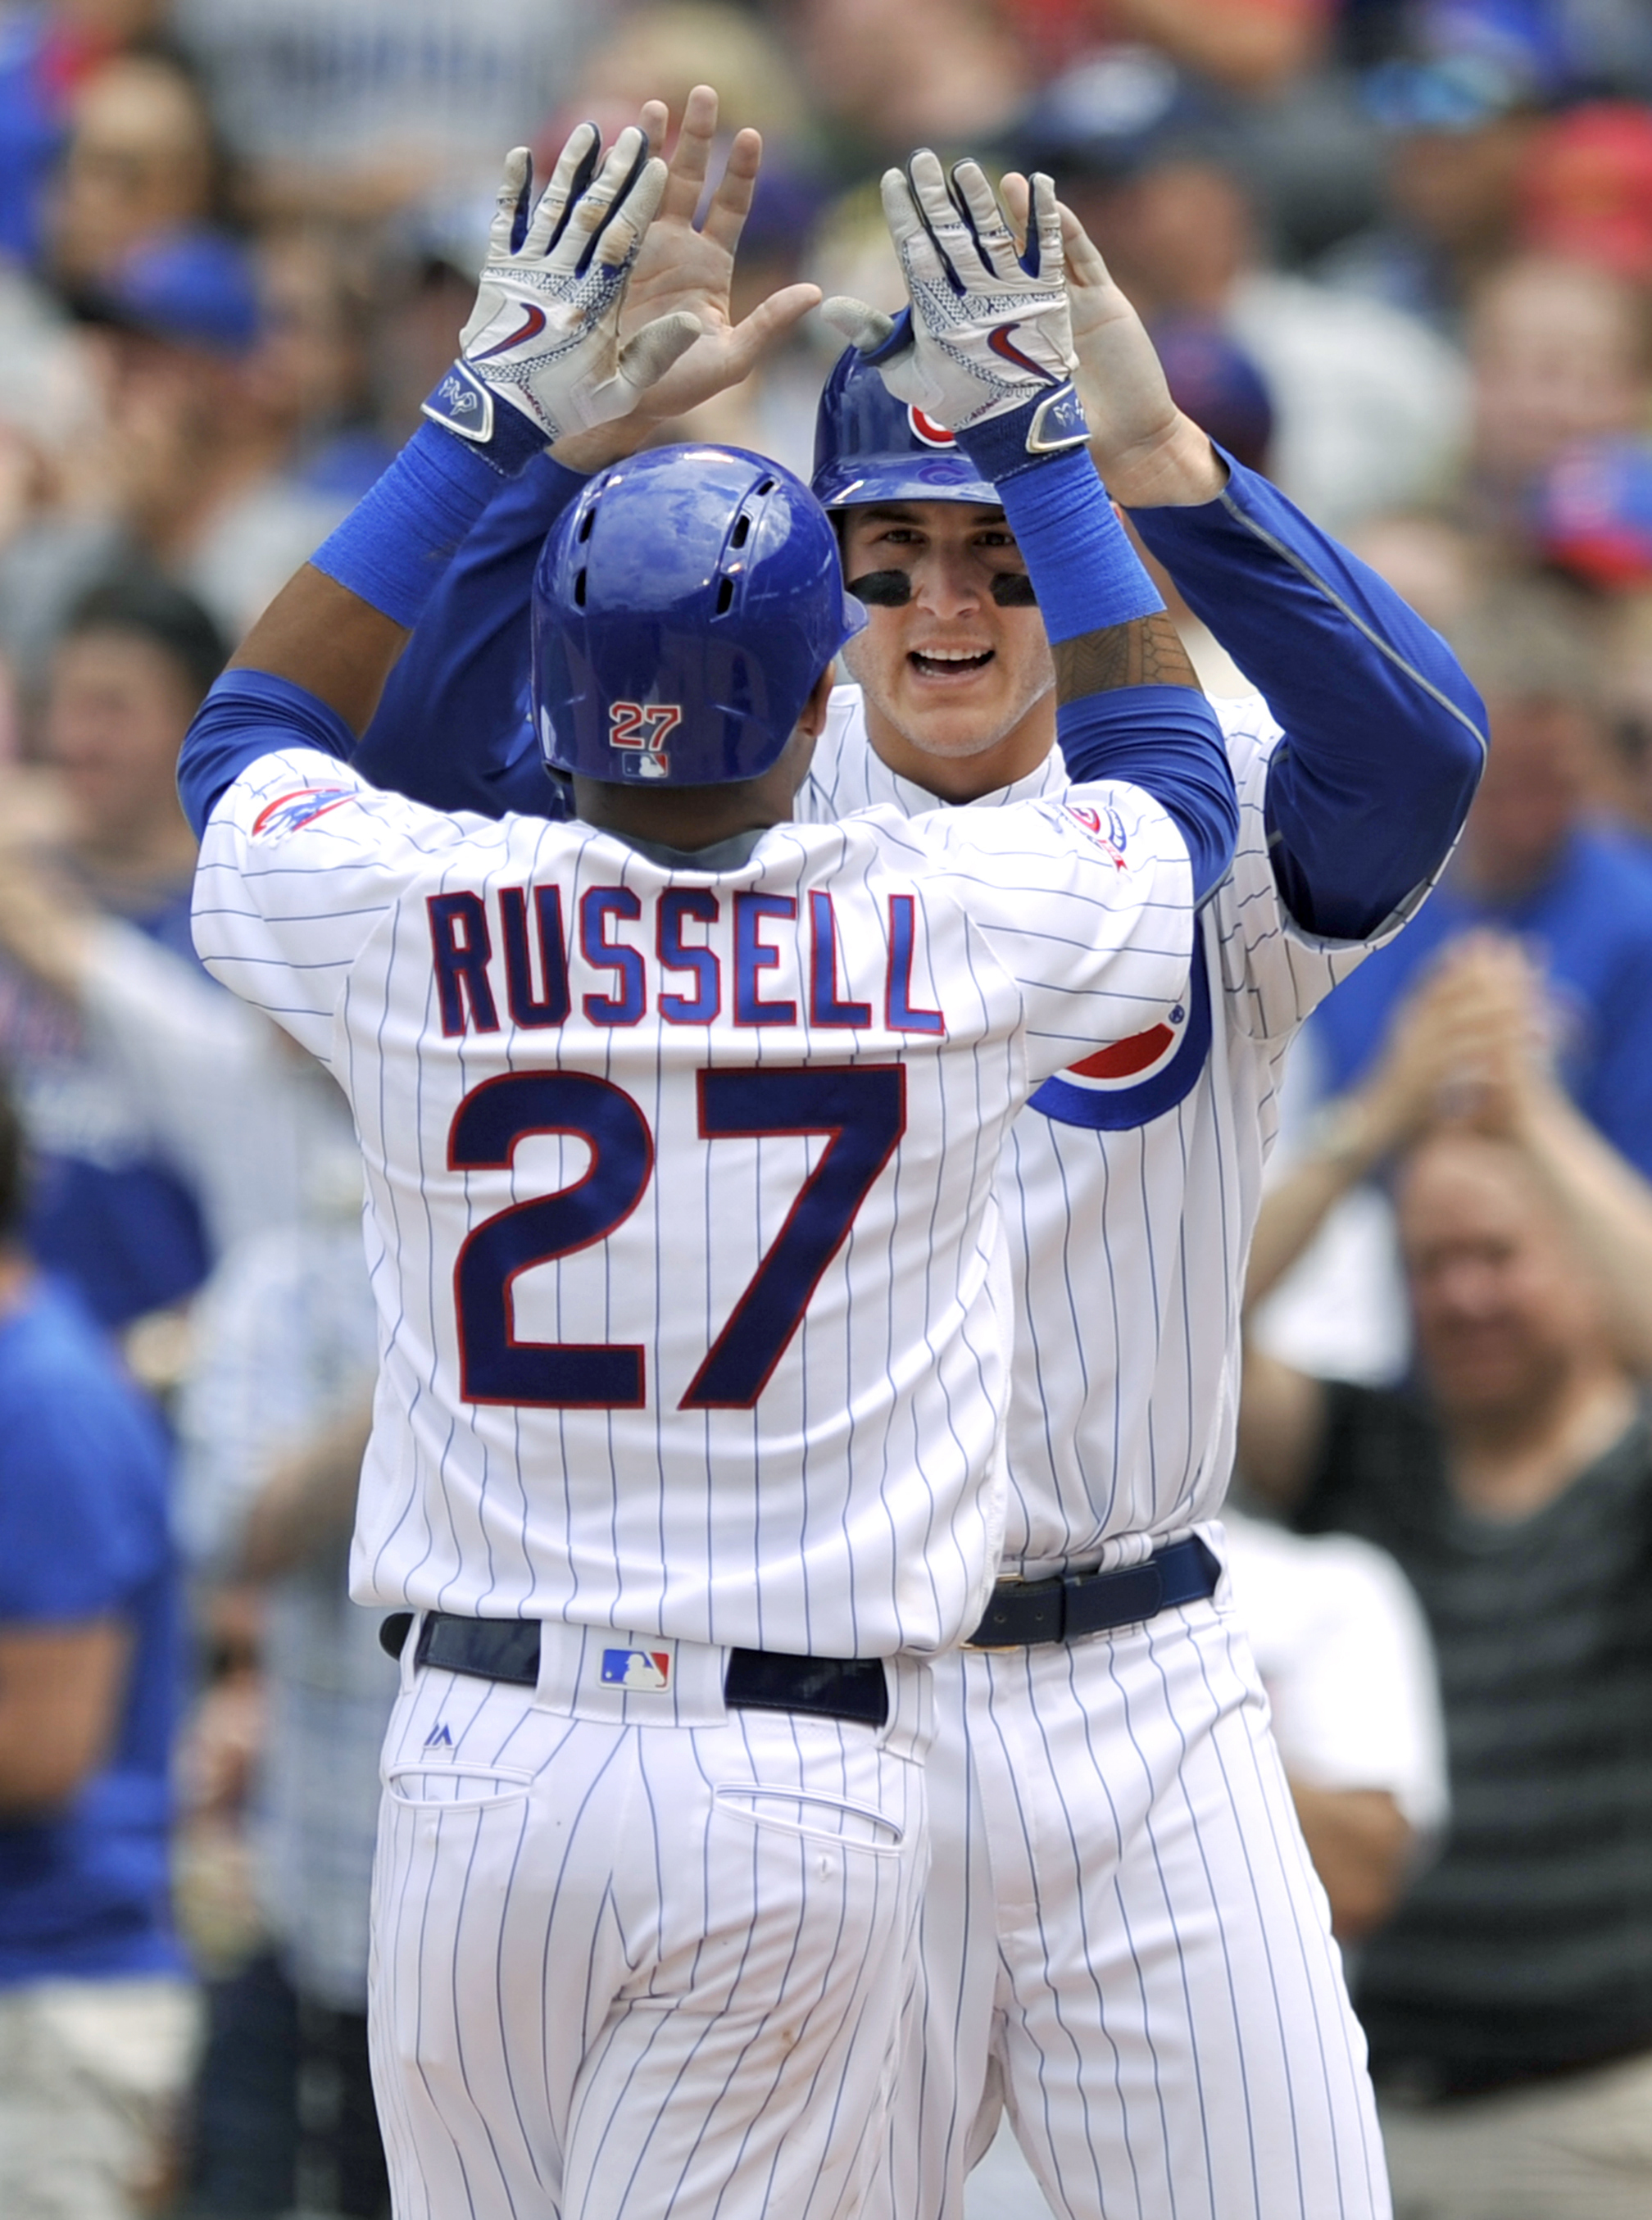 Chicago Cubs' Anthony Rizzo, back, celebrates with teammate Addison Russell (27) after Russell hit a two-run home run during the third inning of a baseball game against the Cincinnati Reds on Tuesday, July 5, 2016, in Chicago. (AP Photo/Paul Beaty)